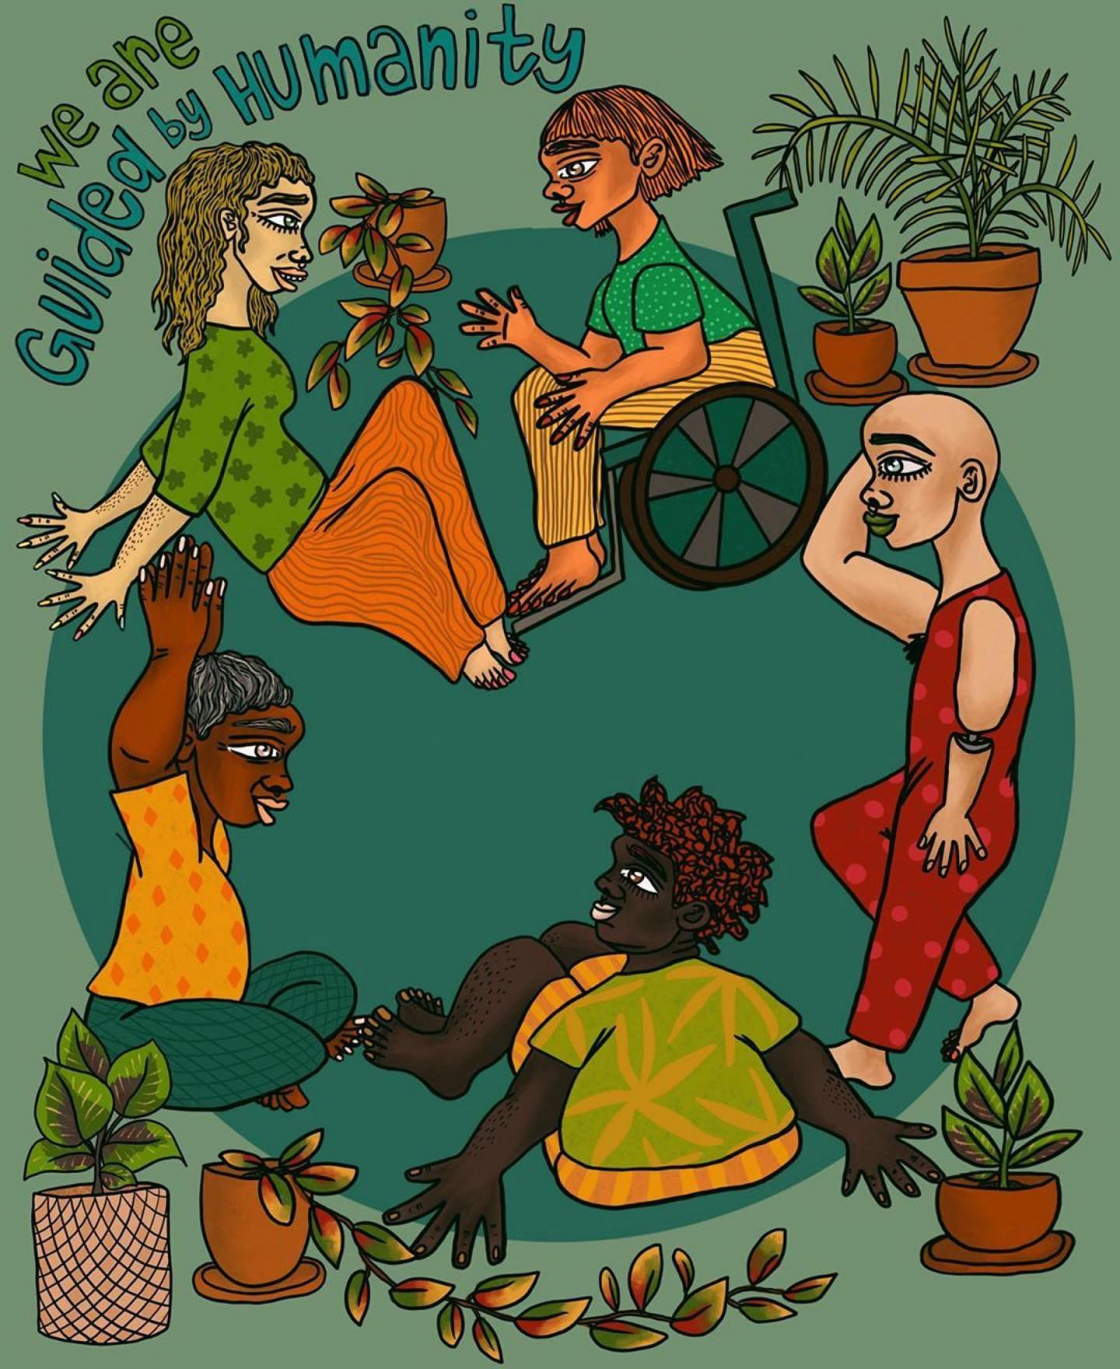 From Left to Right: Text - We Are Guided by Humanity.  Illustration: A Light skinned person with medium length blonde hair wearing a green shirt and orange pants sitting next to a hanging plant, a light-skinned person  with short brown hair sits in a wheel chair wearing a green shirt with white polka dots and yellow pants next to a light skinned person, bald with blue eyes in a red jumper, next to a plant in a round orange pot, a dark-skinned person sits with short orange hair in a yellow and green shirt and wearing striped yellow and orange shorts, sitting next to two plants one in a striped pot, red and white and a plant in a round orange pot, a dark-skinned person sits with their hands up with short grey hair in a yellow shirt with orange diamonds in blue jeans.